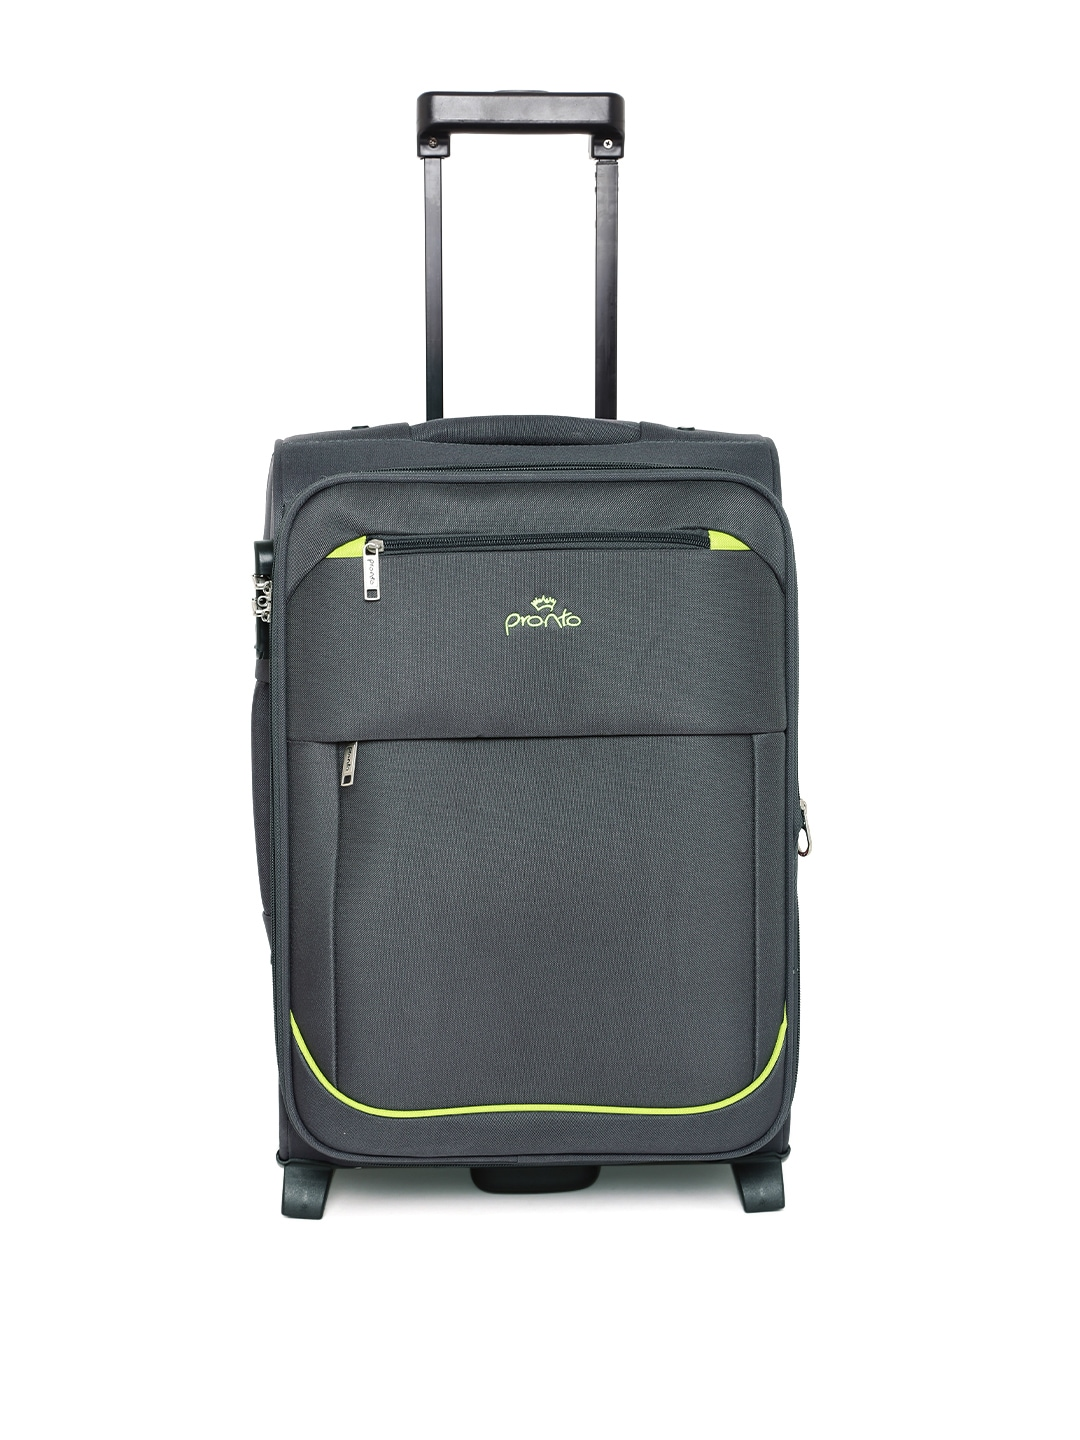 e6d6c313d4 Pronto Trolley Bag - Buy Pronto Trolley Bag online in India